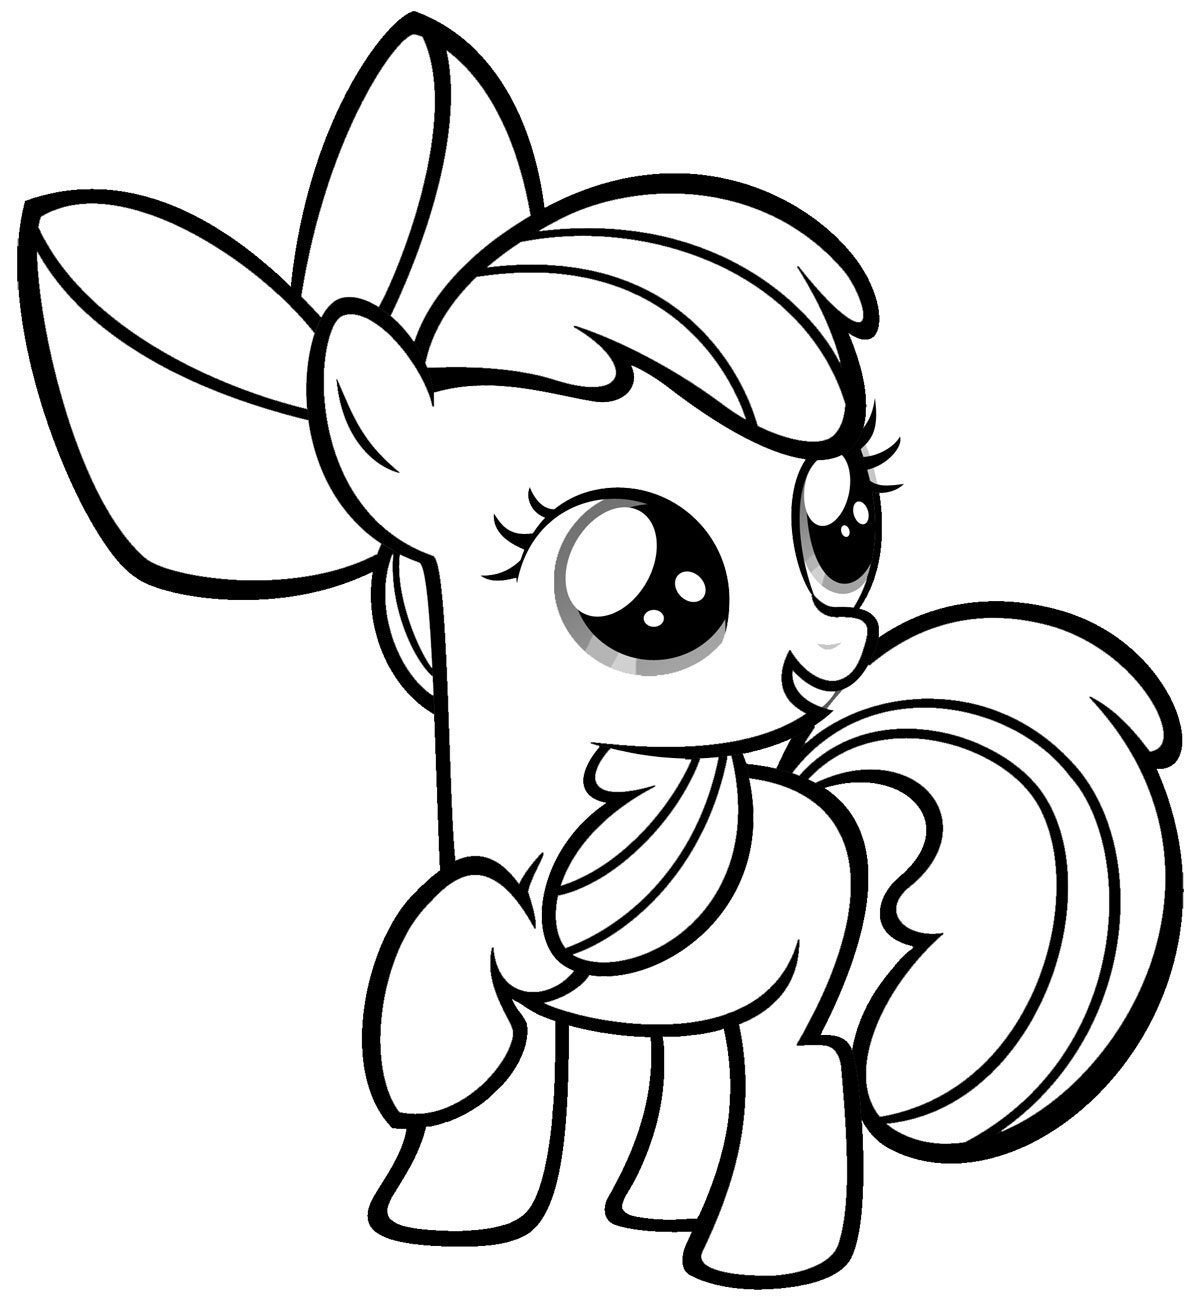 Free Printable My Little Pony Coloring Pages For Kids  Coloring Kids